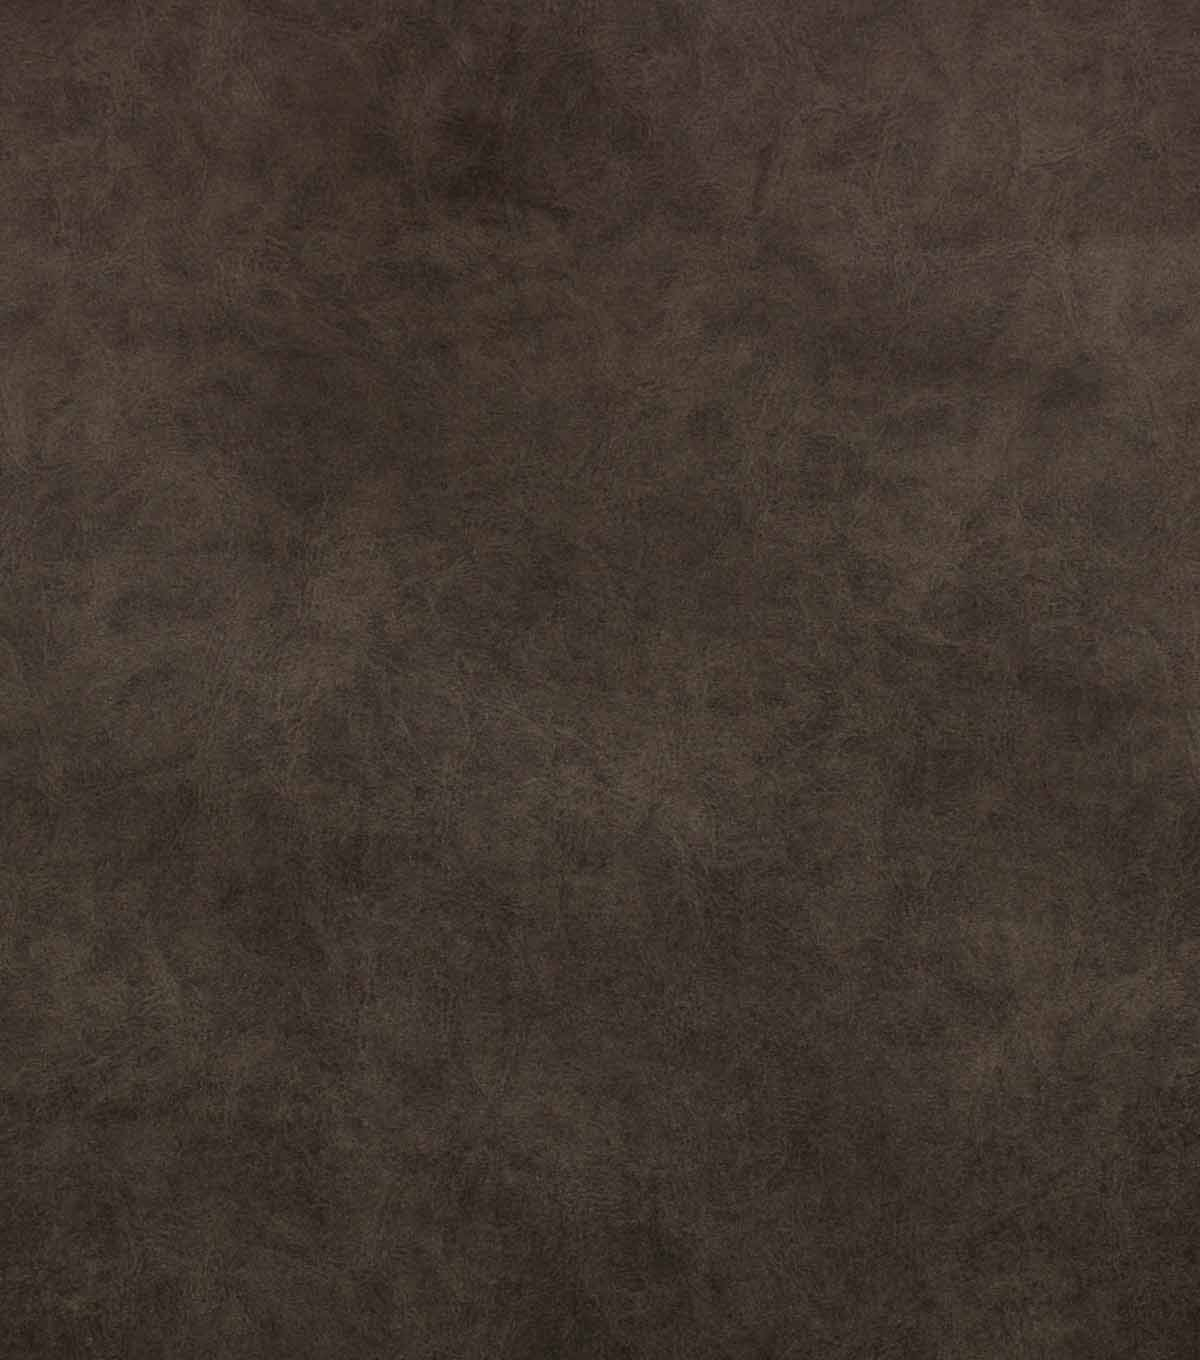 Richloom Studio Multi-Purpose Decor Fabric 54\u0027\u0027-Chocolate Kaysen